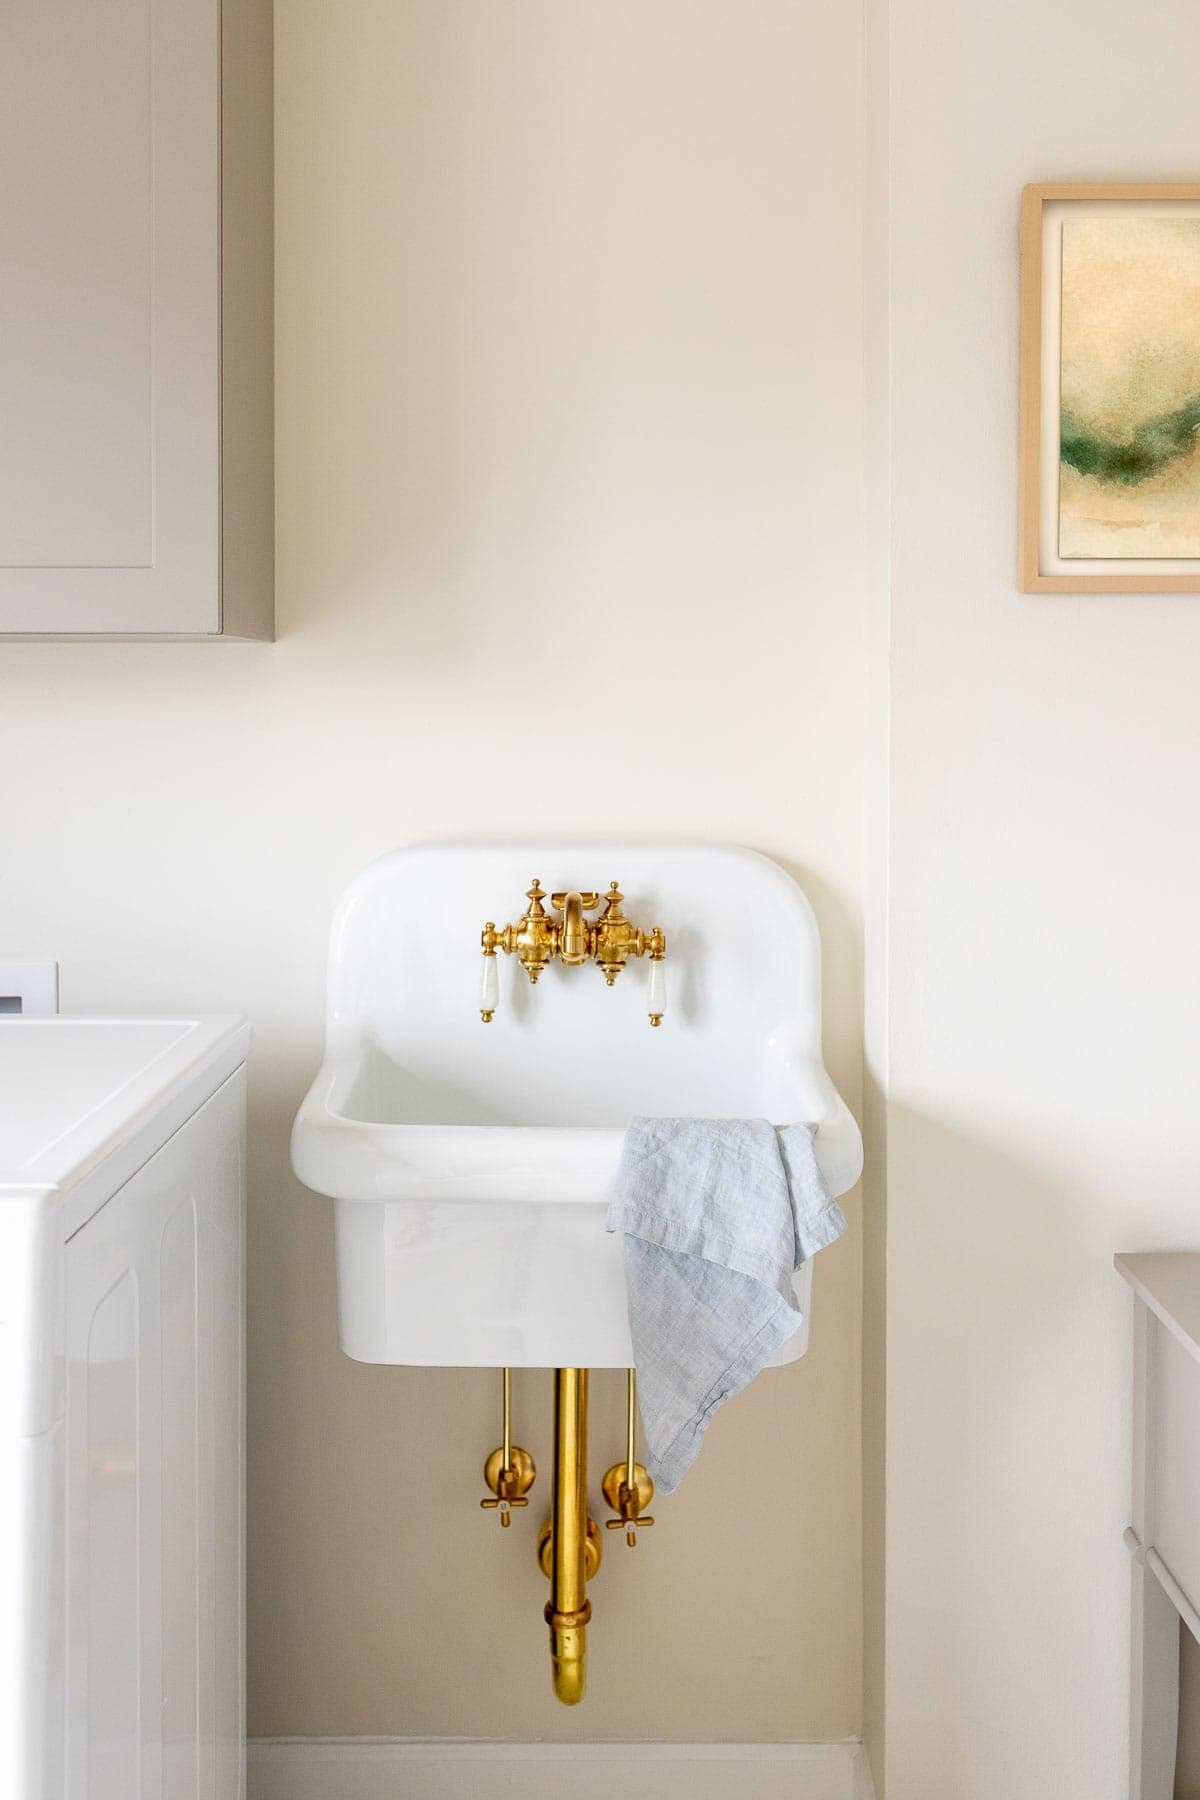 wall mount utility sink with brass pipes and faucet